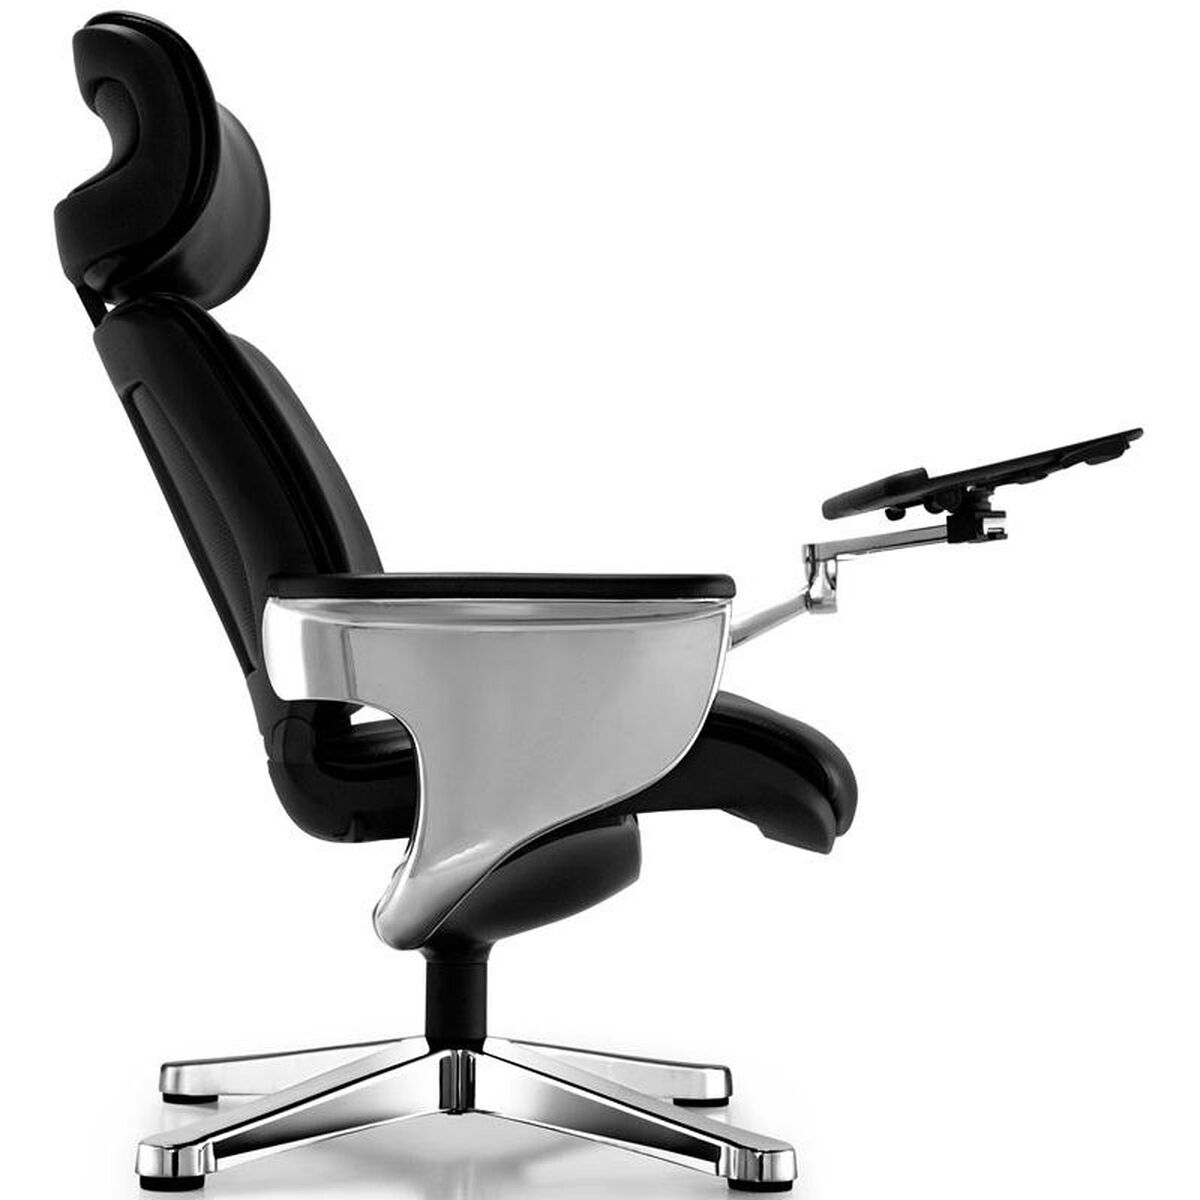 Our Nuvem Leather Office Chair With Footrest And Built In Laptop Holder Black Is On